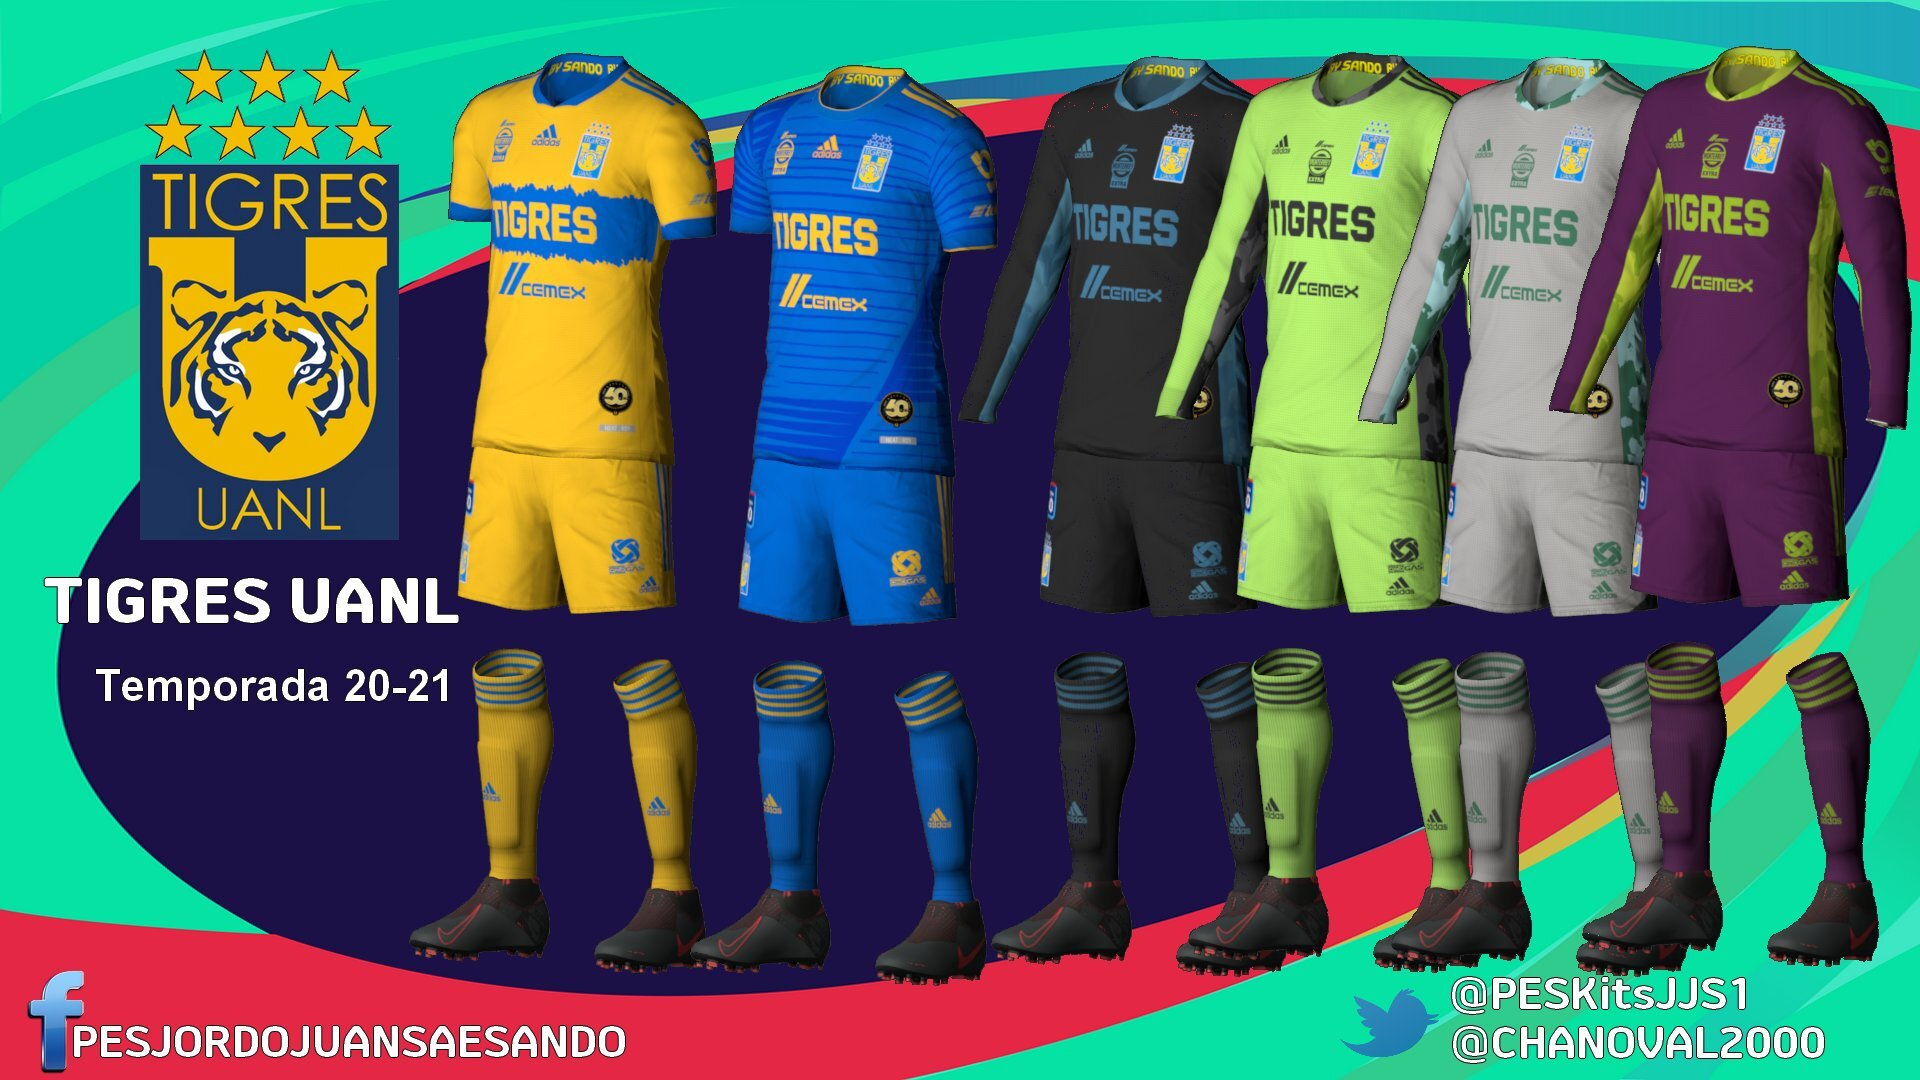 Kits Tigres UANL 2020/2021 by Sando